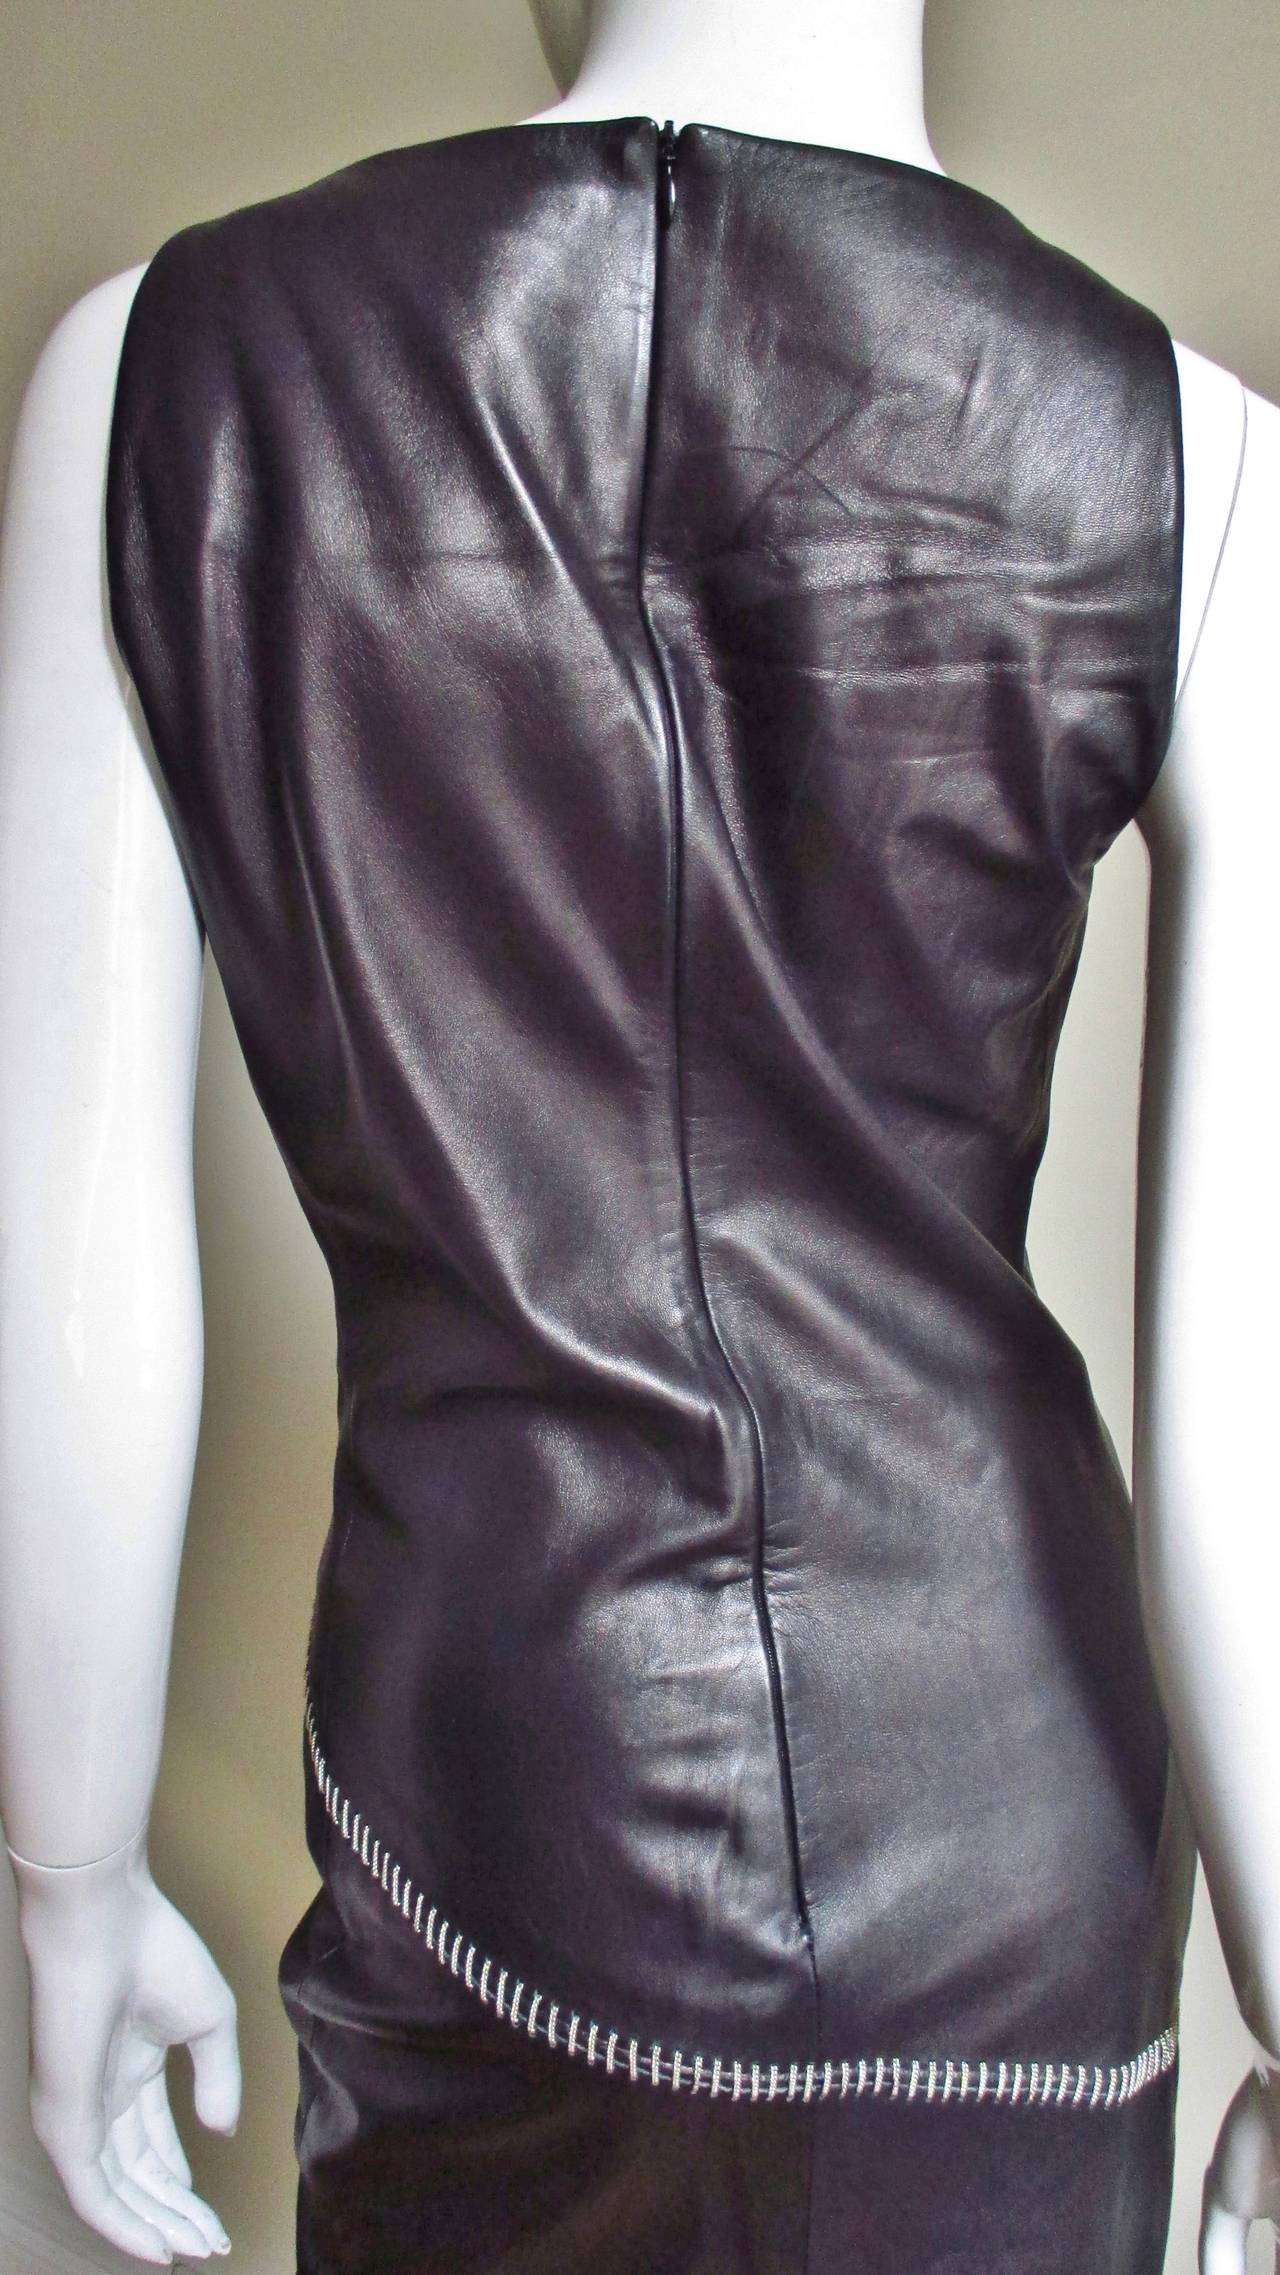 Gianni Versace Leather Dress With Chains 6